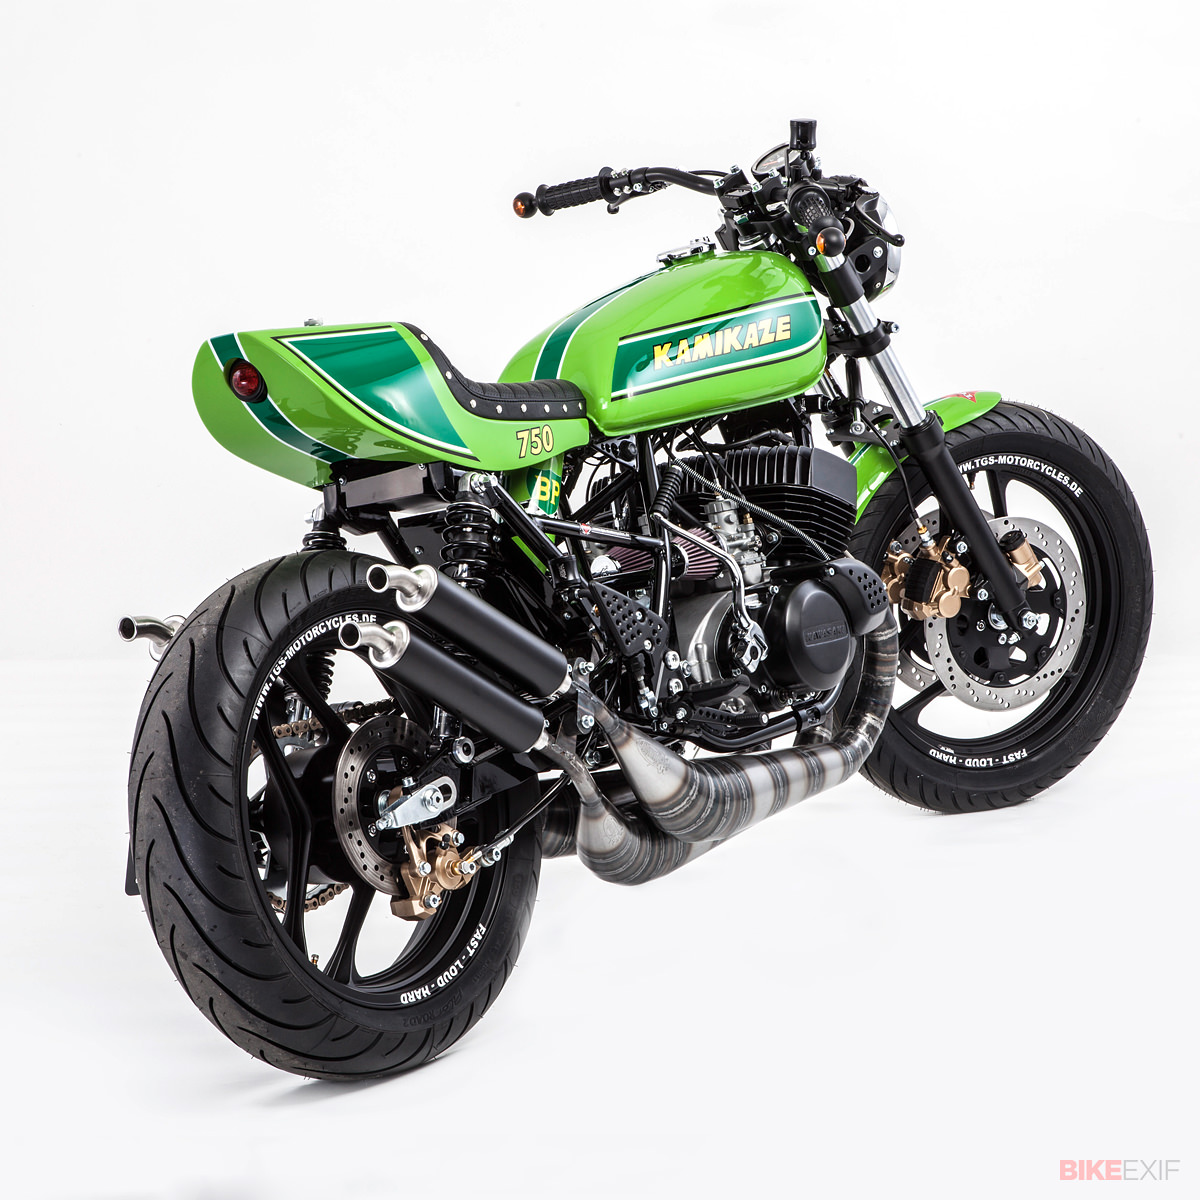 Kawasaki Zxr One Or Two Exhaust